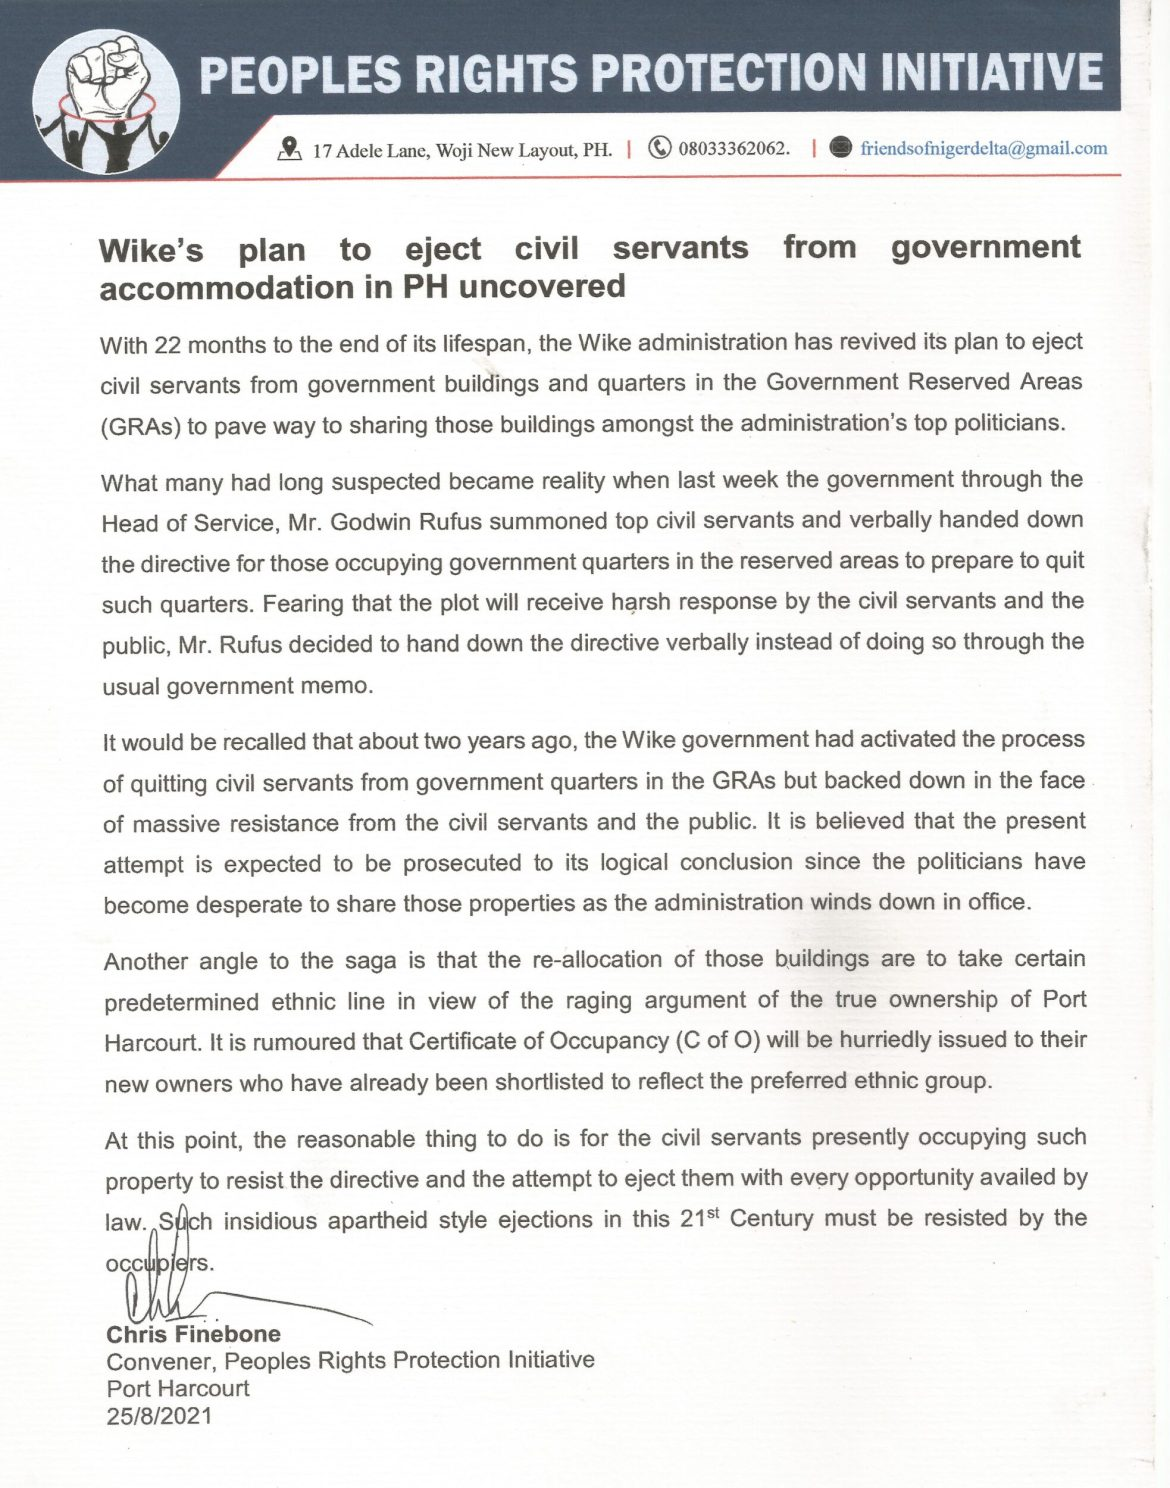 Wike's plan to eject civil servants from government accommodation - PRPI